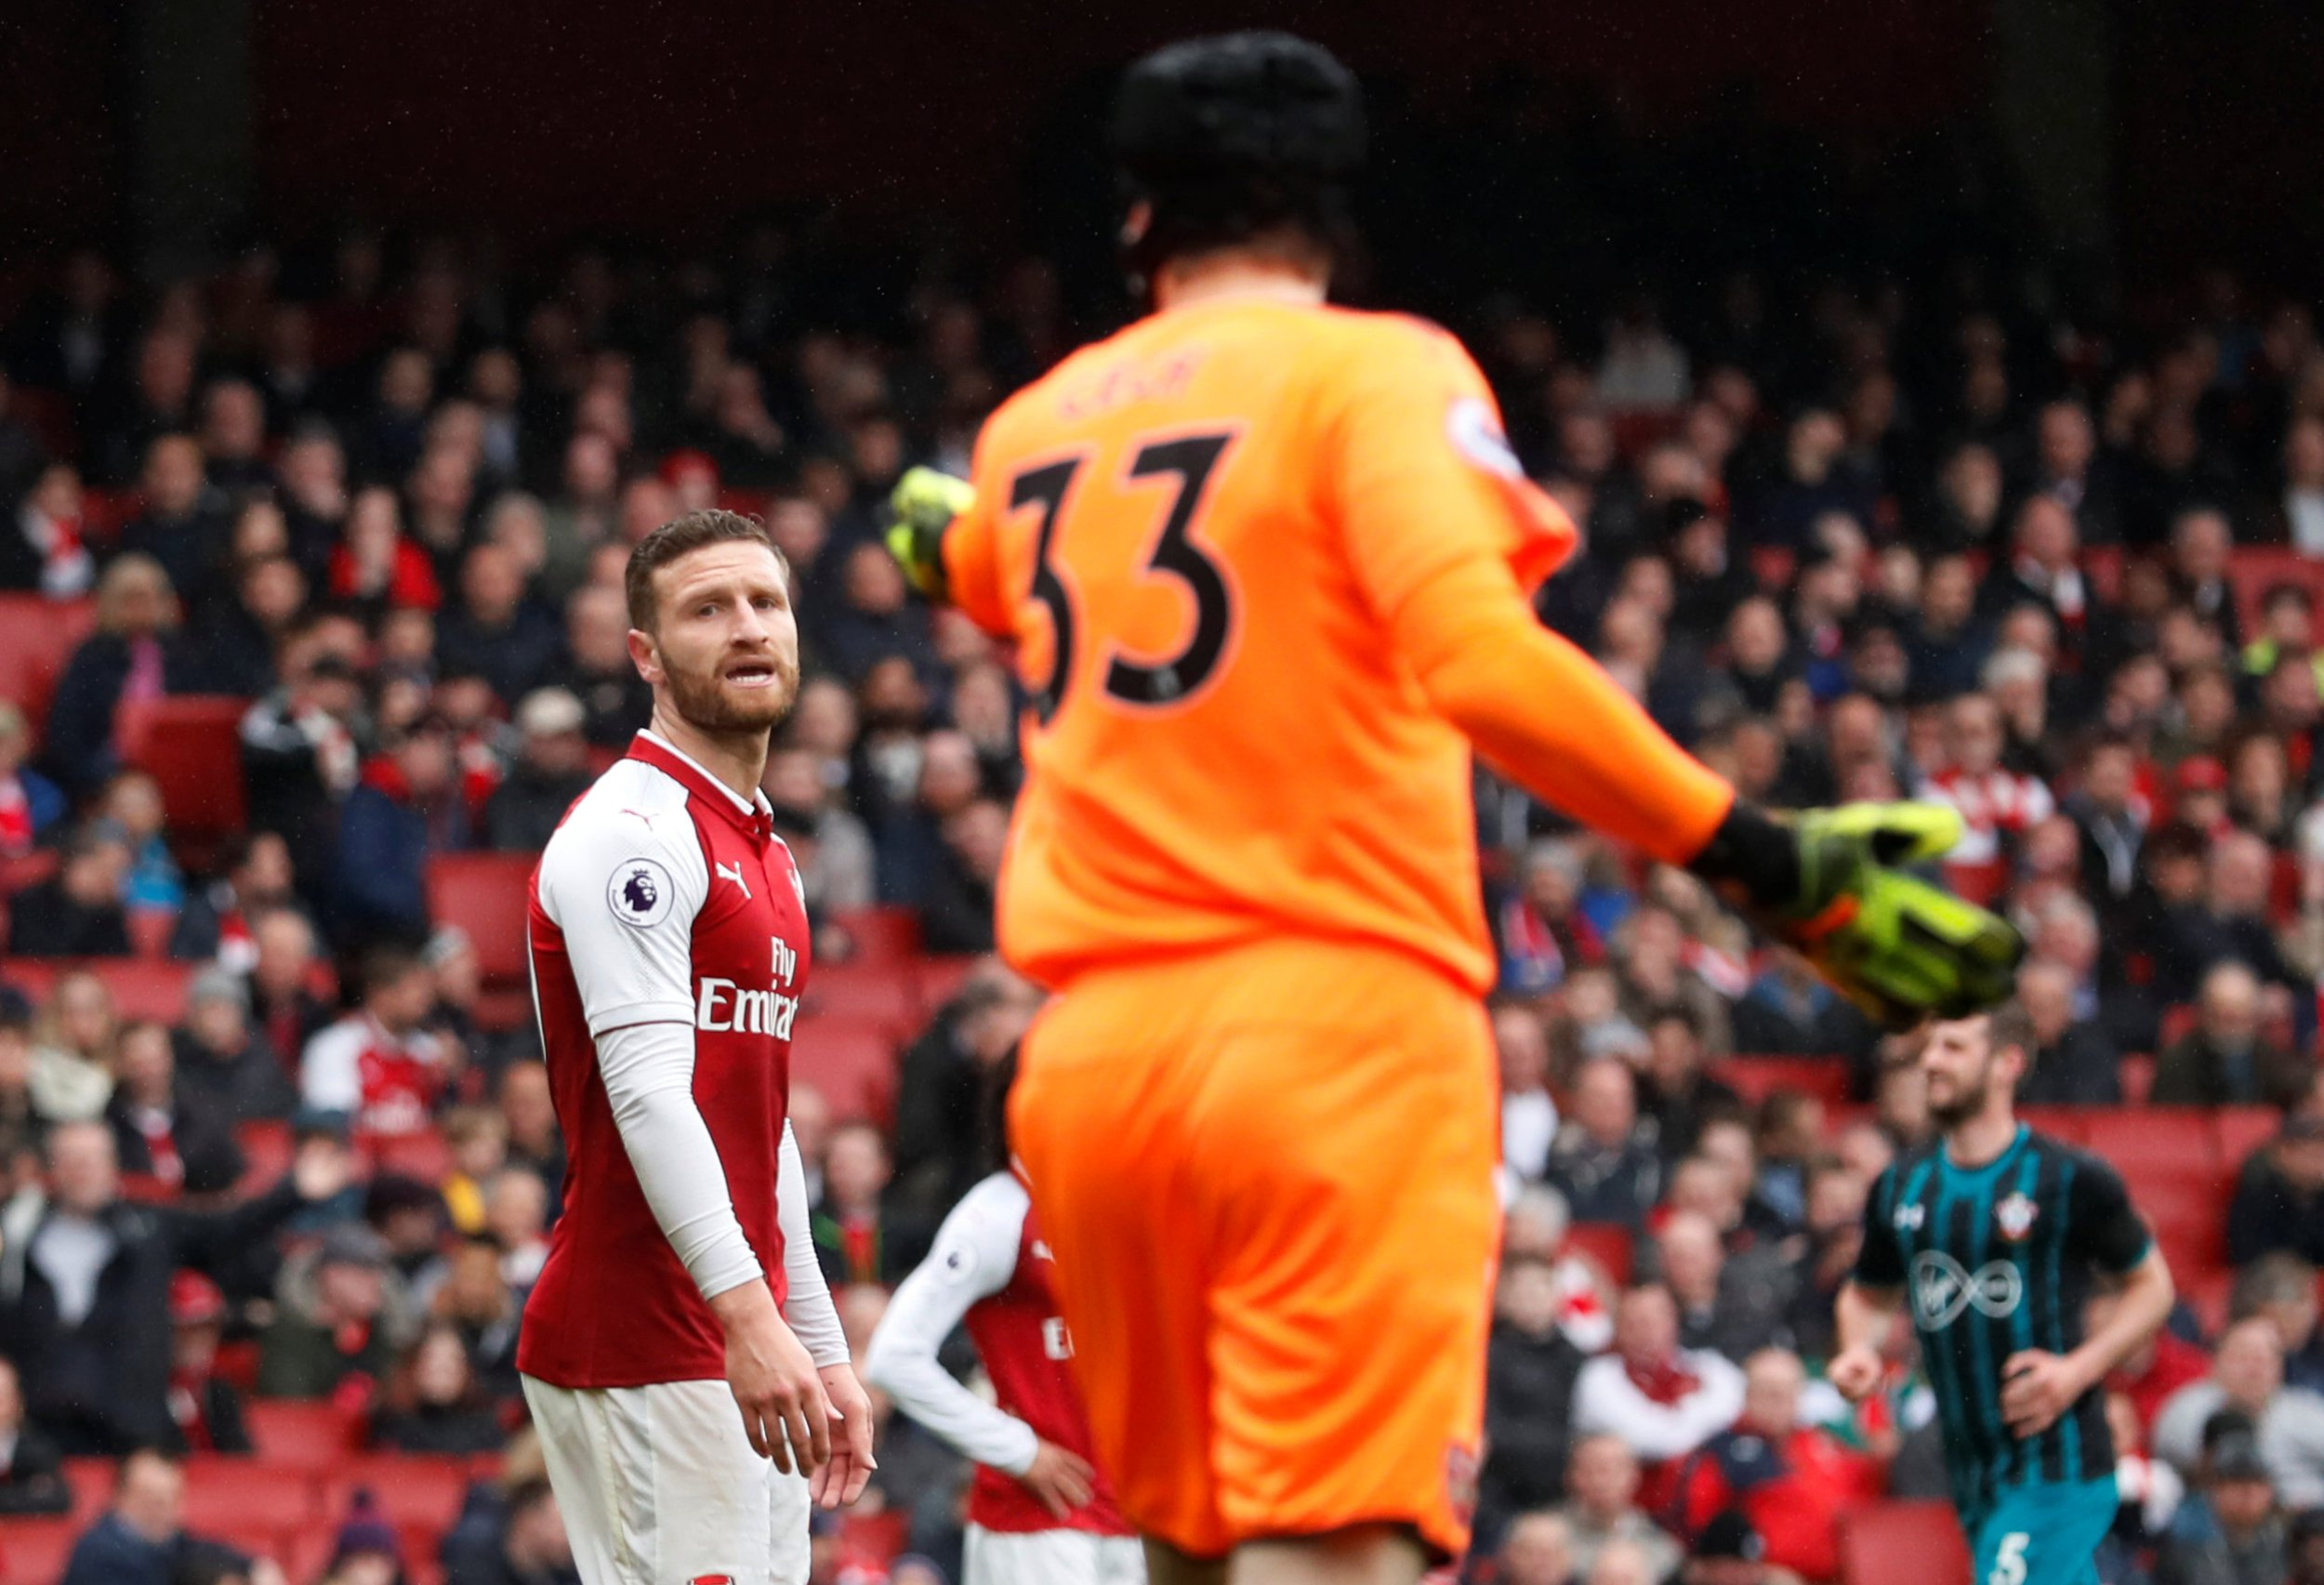 """Soccer Football - Premier League - Arsenal vs Southampton - Emirates Stadium, London, Britain - April 8, 2018 Arsenal's Shkodran Mustafi and Petr Cech react after Southampton's Shane Long scores their first goal REUTERS/David Klein EDITORIAL USE ONLY. No use with unauthorized audio, video, data, fixture lists, club/league logos or """"live"""" services. Online in-match use limited to 75 images, no video emulation. No use in betting, games or single club/league/player publications. Please contact your account representative for further details."""